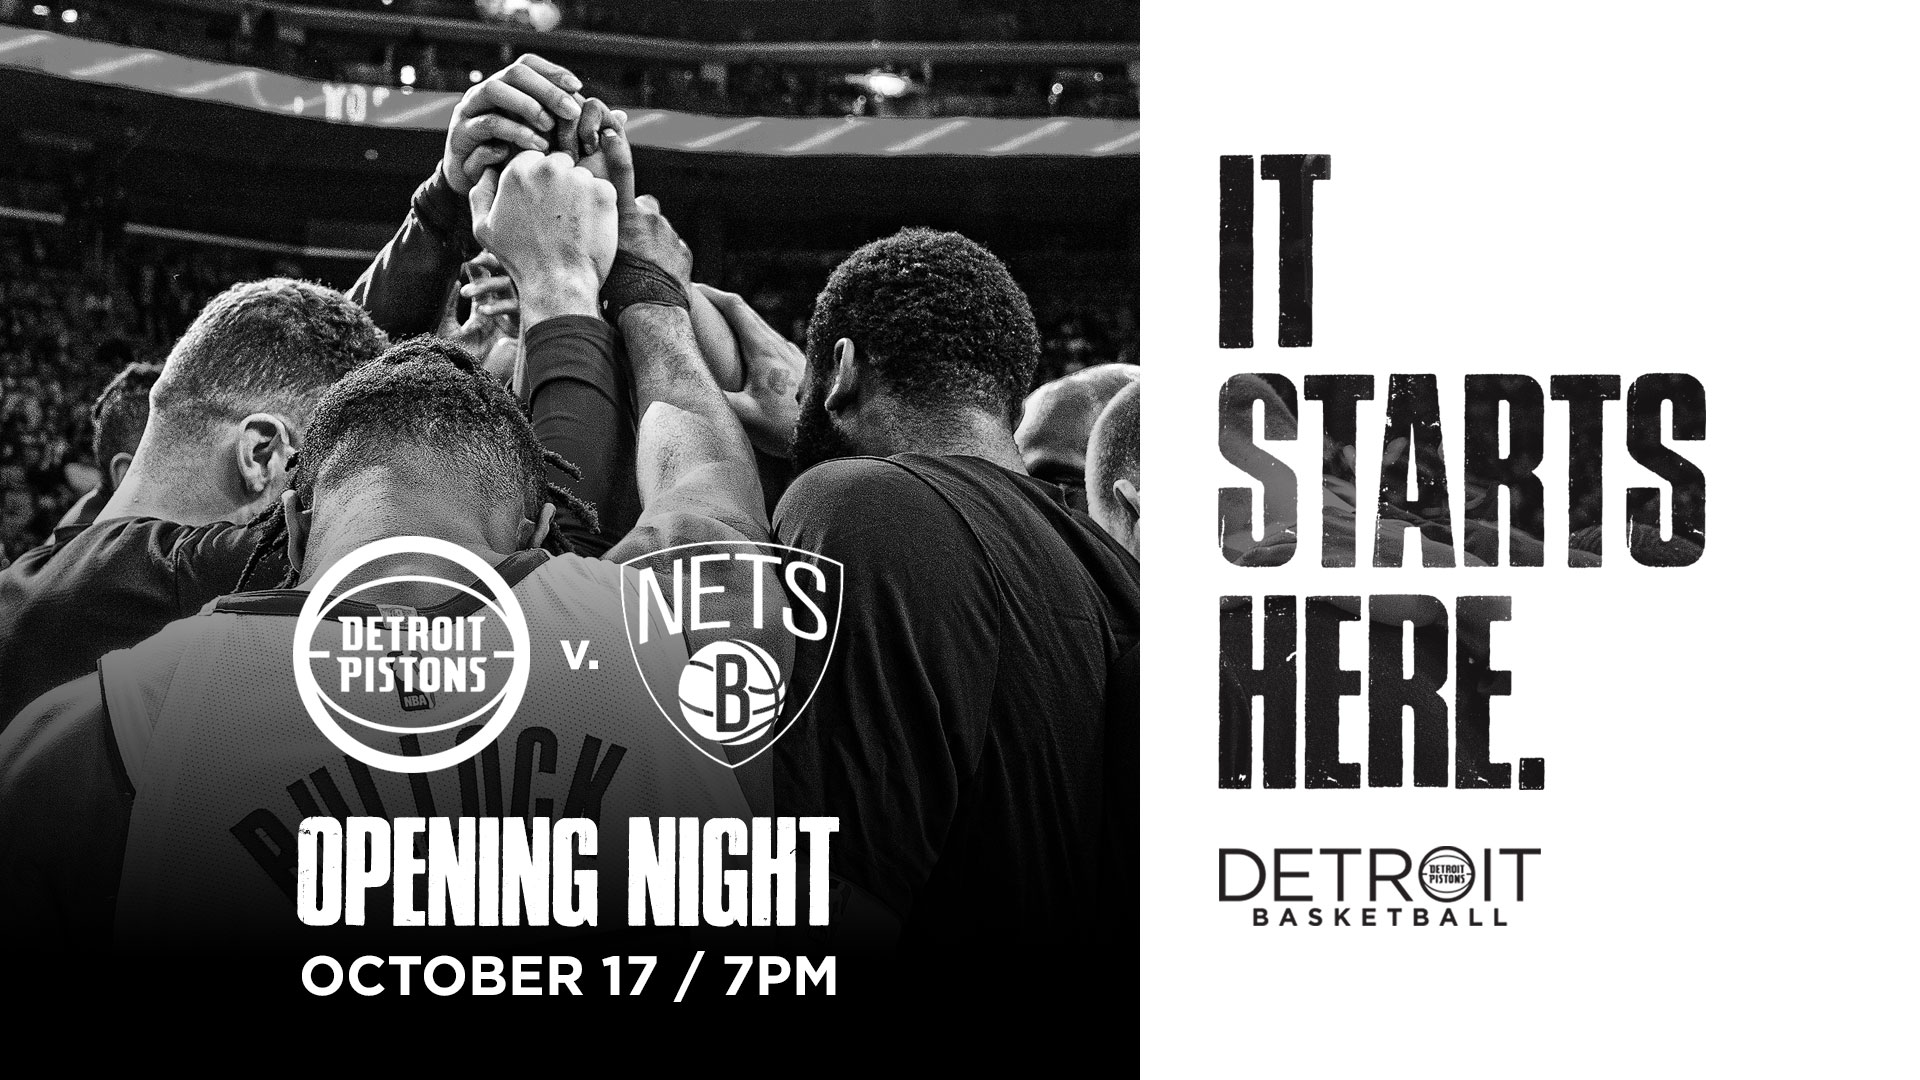 Opening Night at Little Caesars Arena | Detroit Pistons